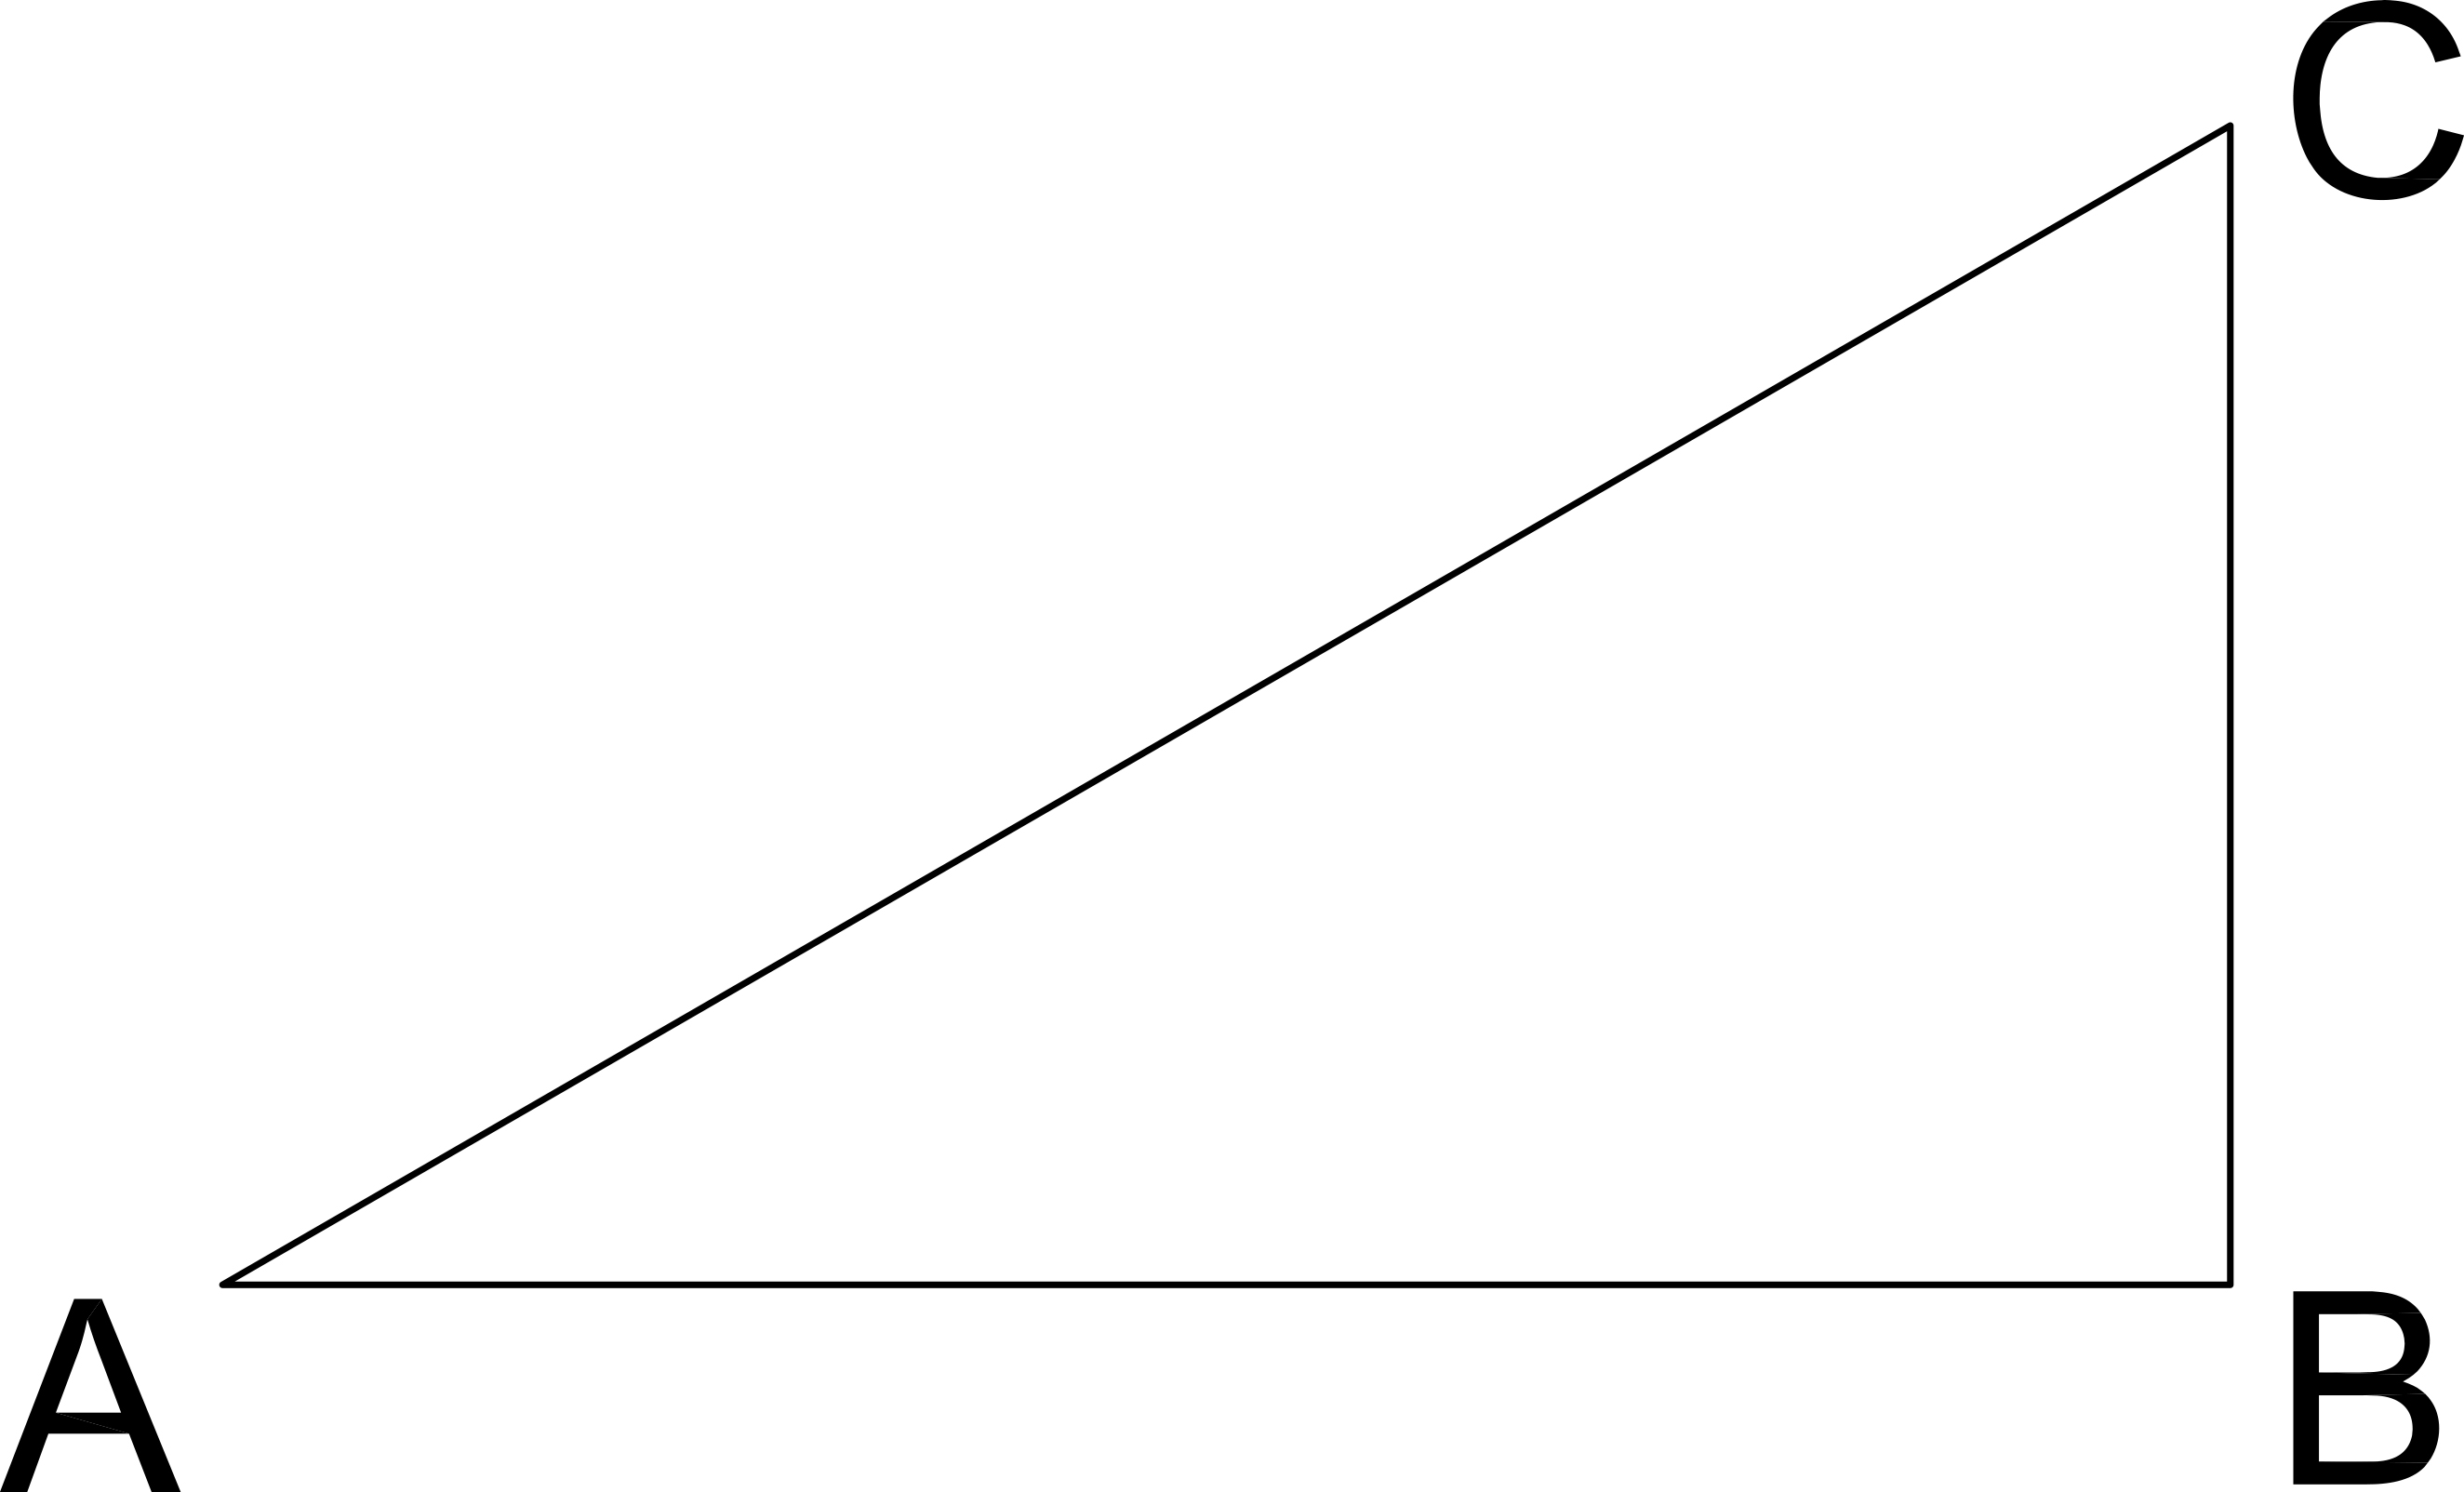 Example Question #2 : How To Find The Length Of The Side Of A Right